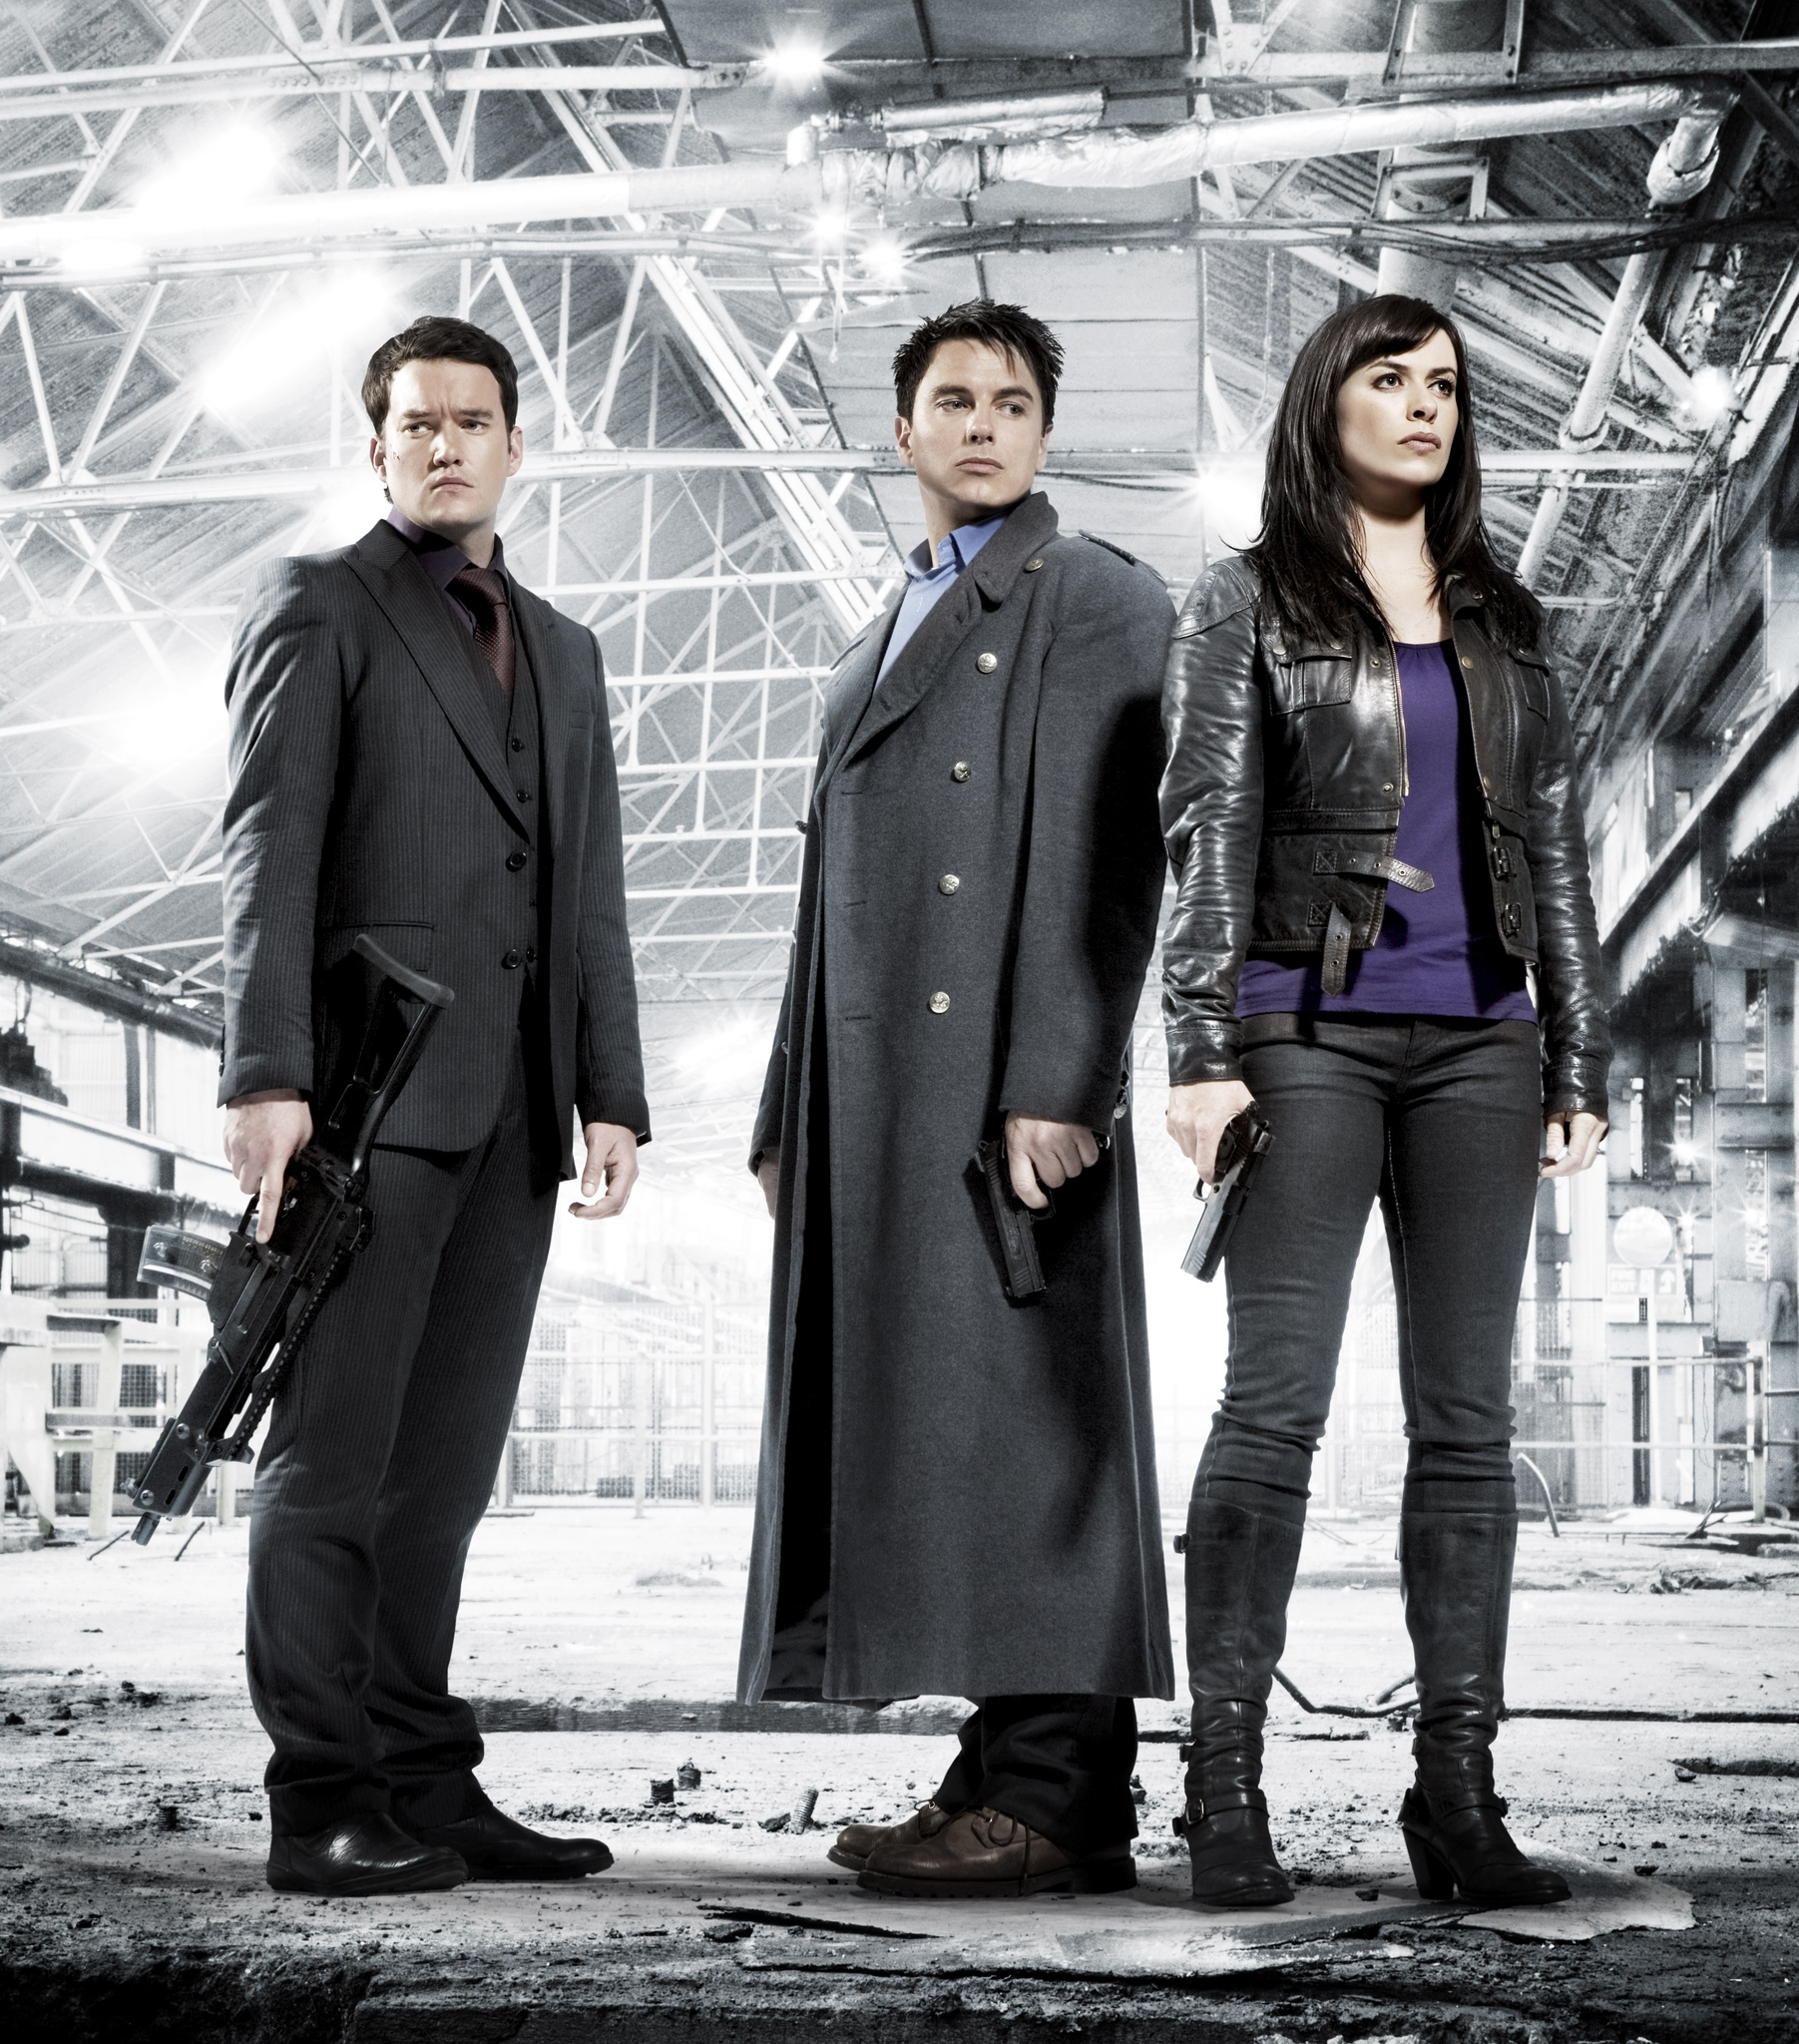 streaming guide 10 sci fi tv shows that are totally binge worthy john barrowman eve myles and gareth david lloyd in torchwood 2006